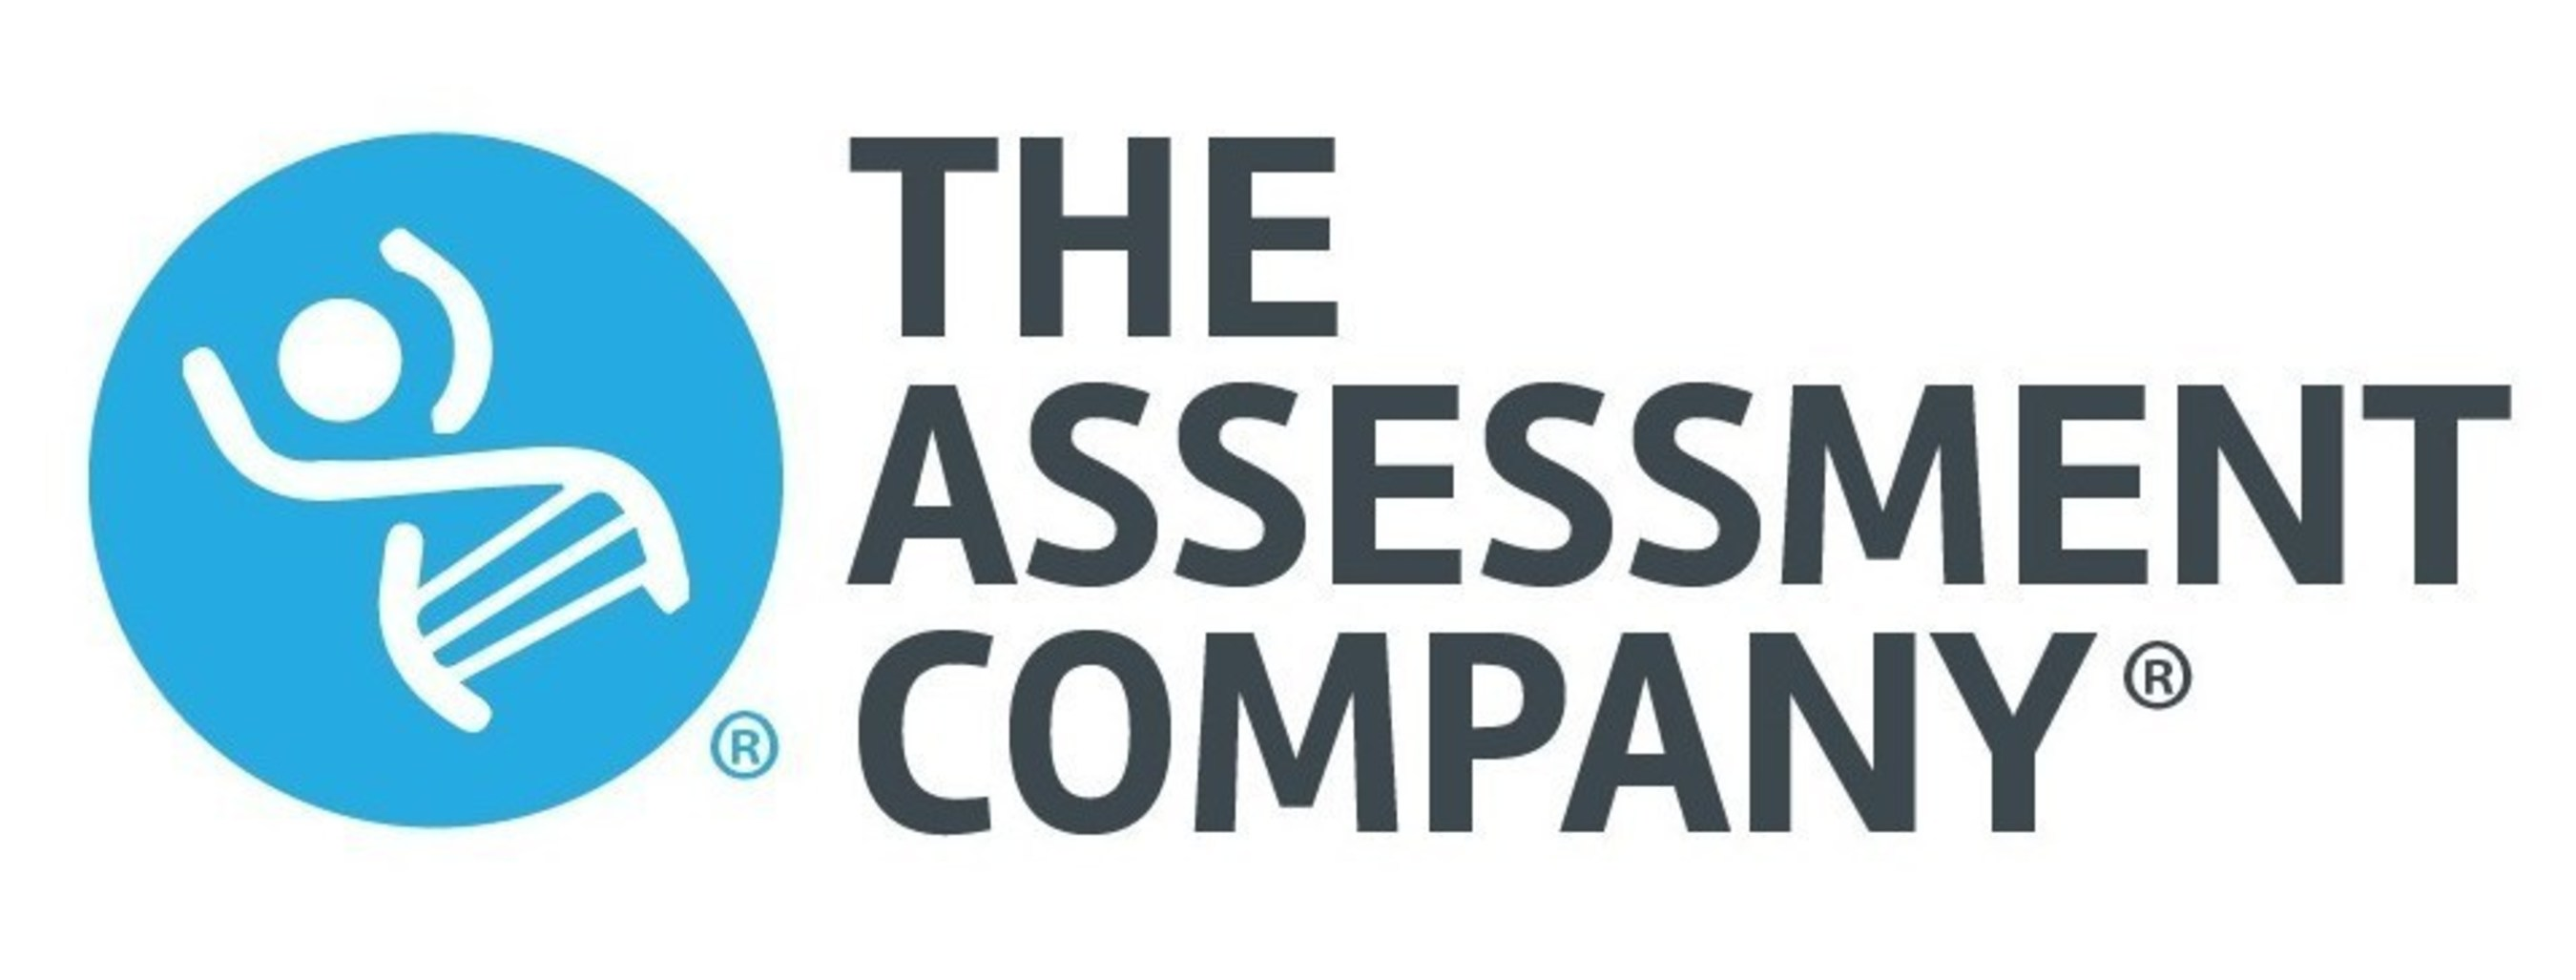 """John Beck founded The Assessment Company(R) with one goal in mind; to share his knowledge and spread the word about """"Occupational DNA(R)"""" and how the ODNA(R) process can provide meaningful, measurable results. Since 1994, John and his team have helped hundreds of clients understand their people and how they will perform on the job."""